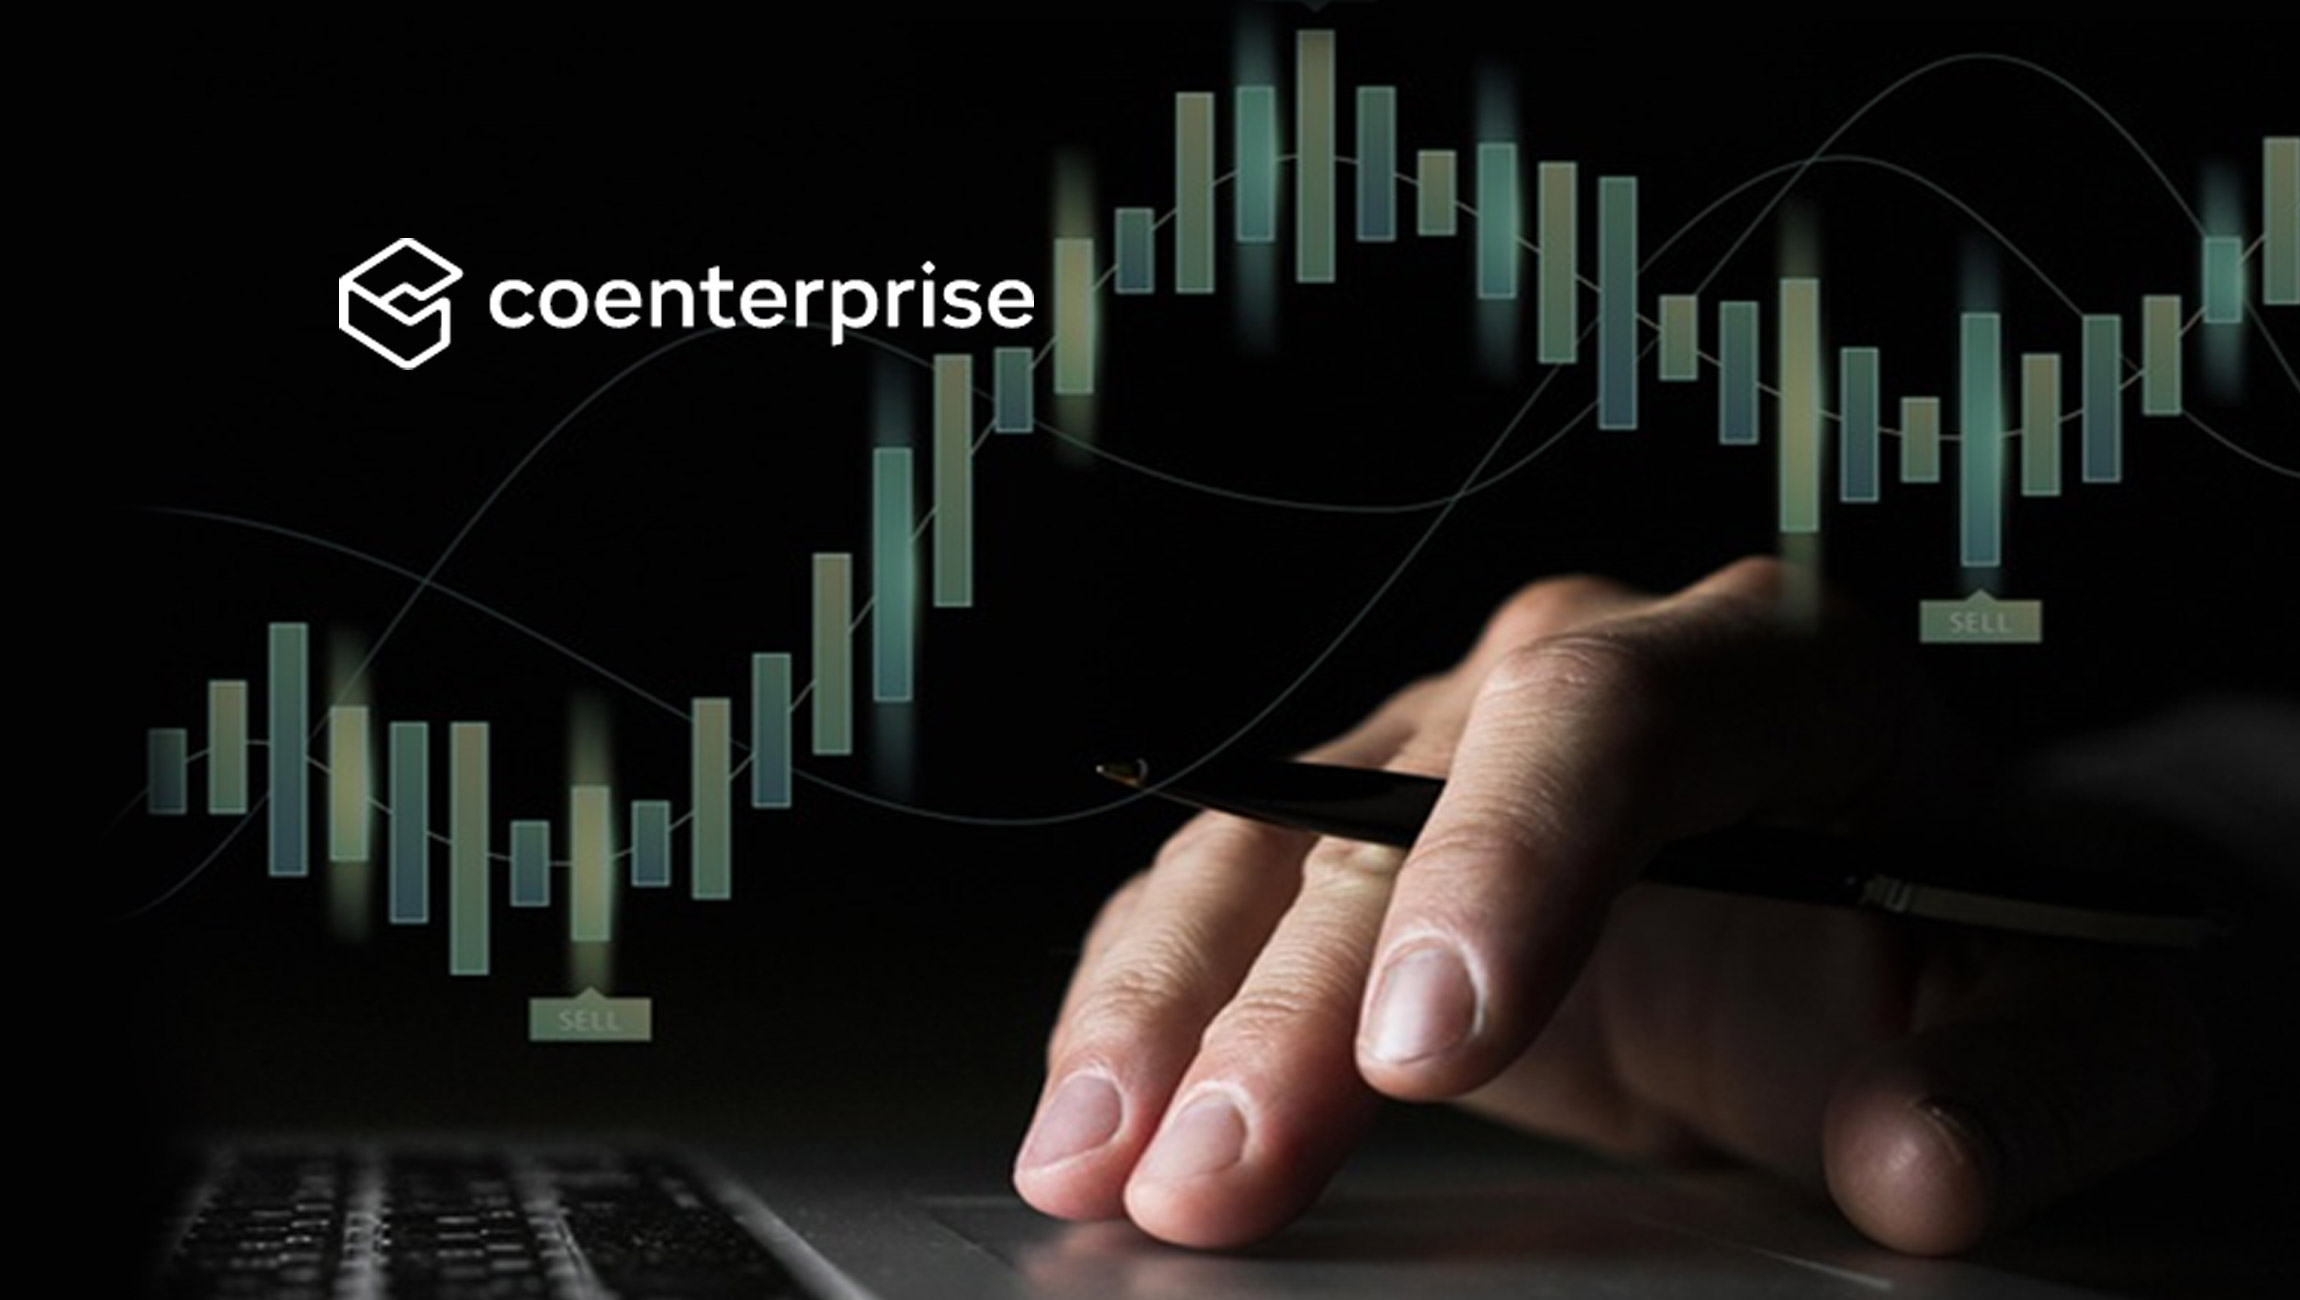 G2-Names-CoEnterprise's-Syncrofy-a-High-Performer-in-G2-Summer-Report-for-EDI